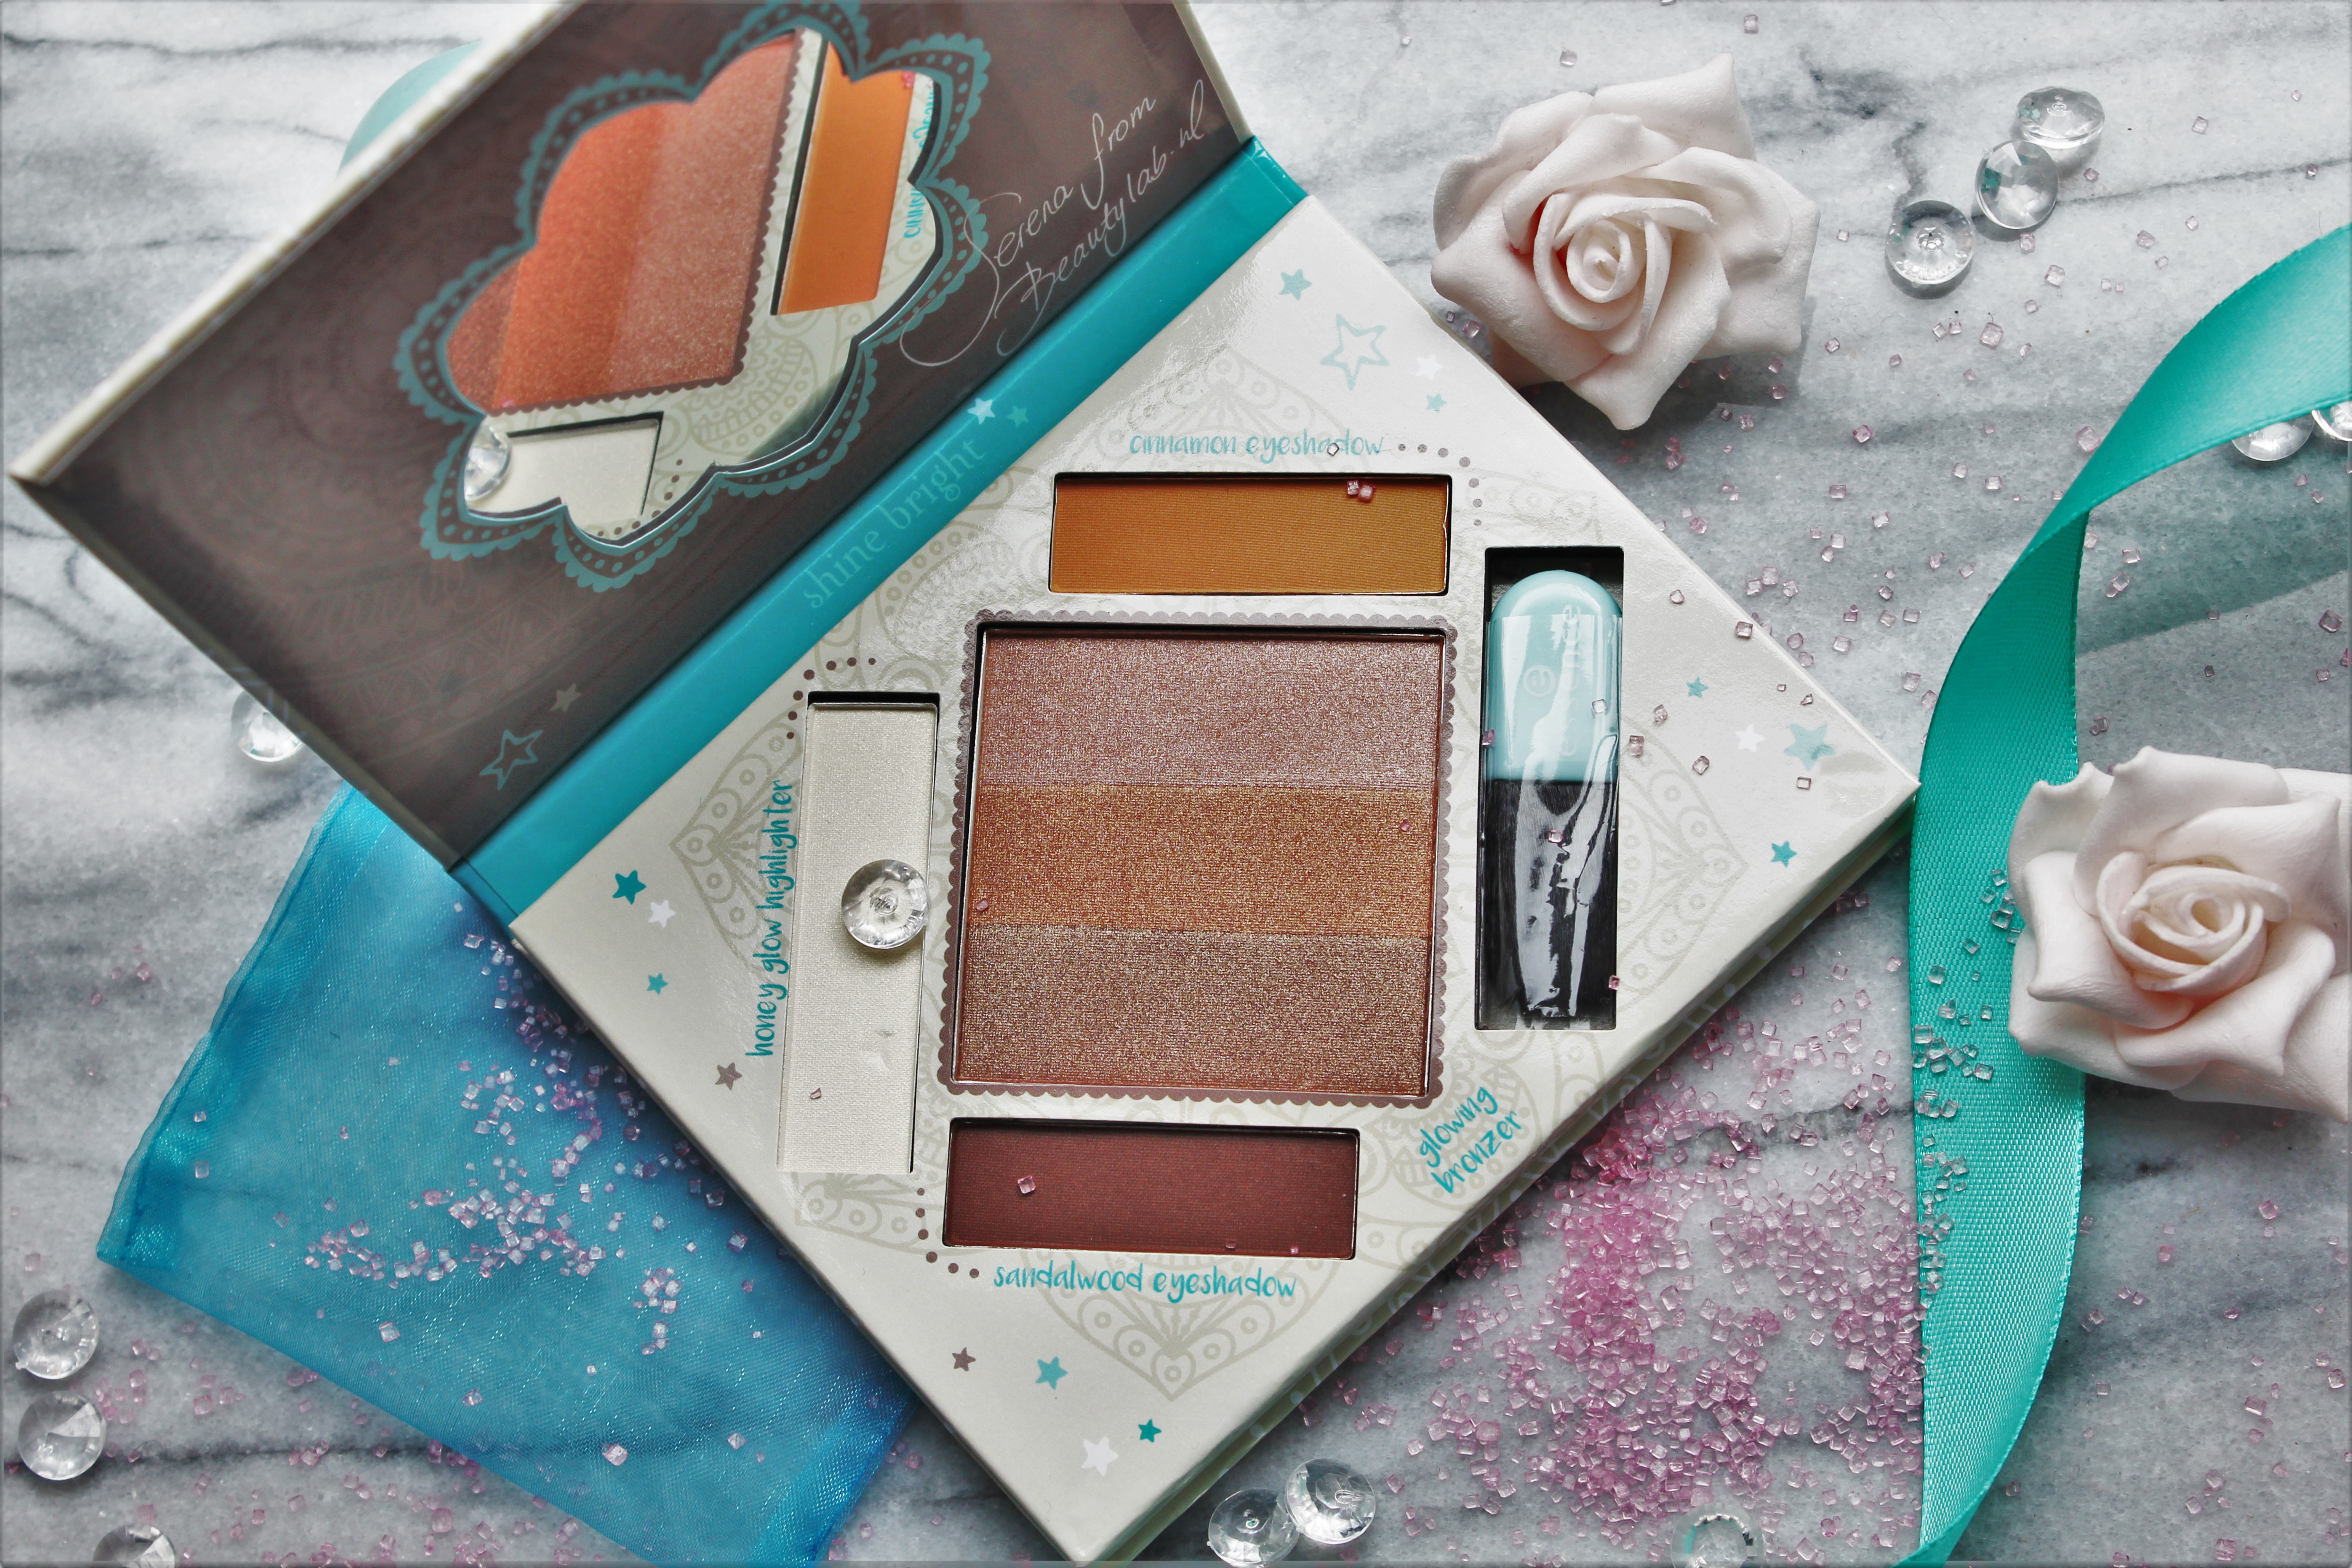 The Glow must go on | Essence x Beautylab palette review & look